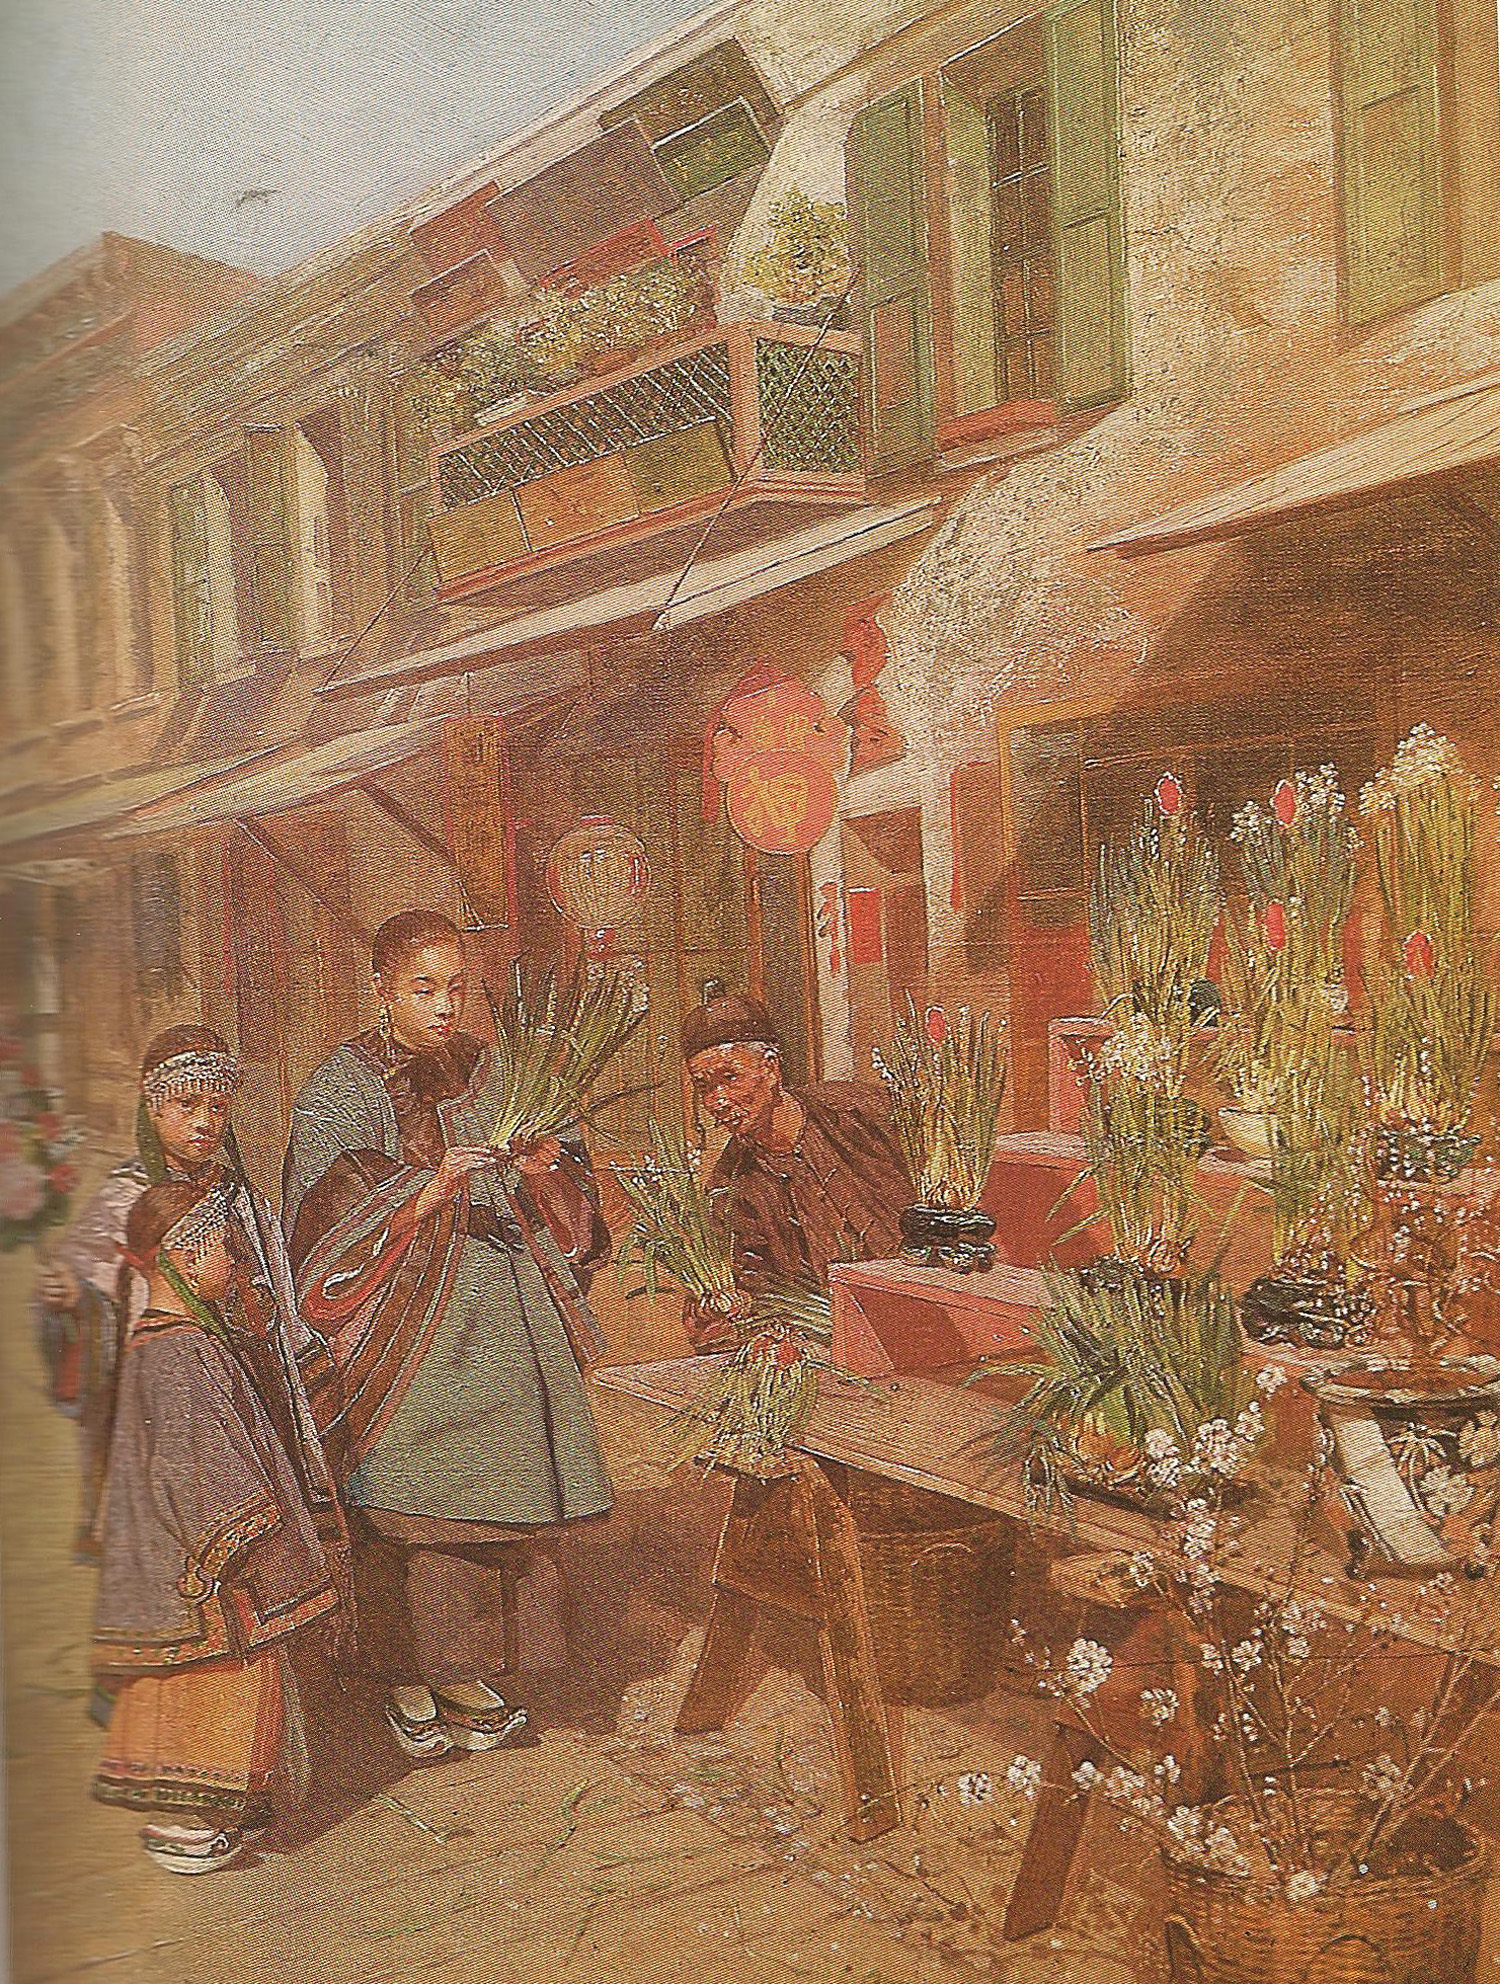 Street scene with flower stand - Copy